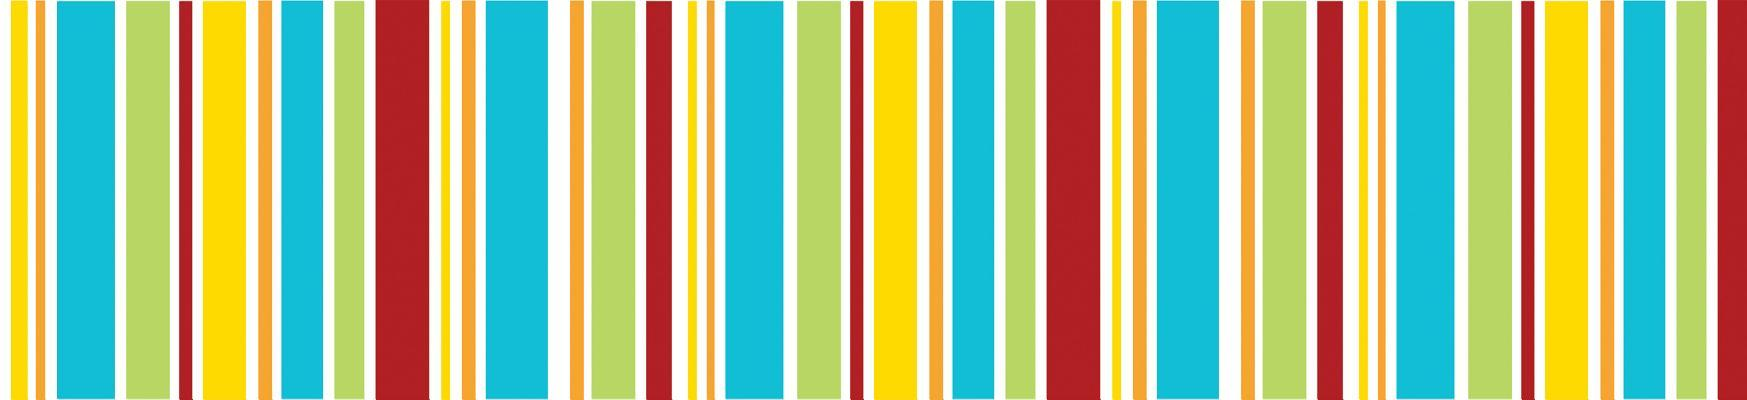 Hipster Stripes Straight Borders